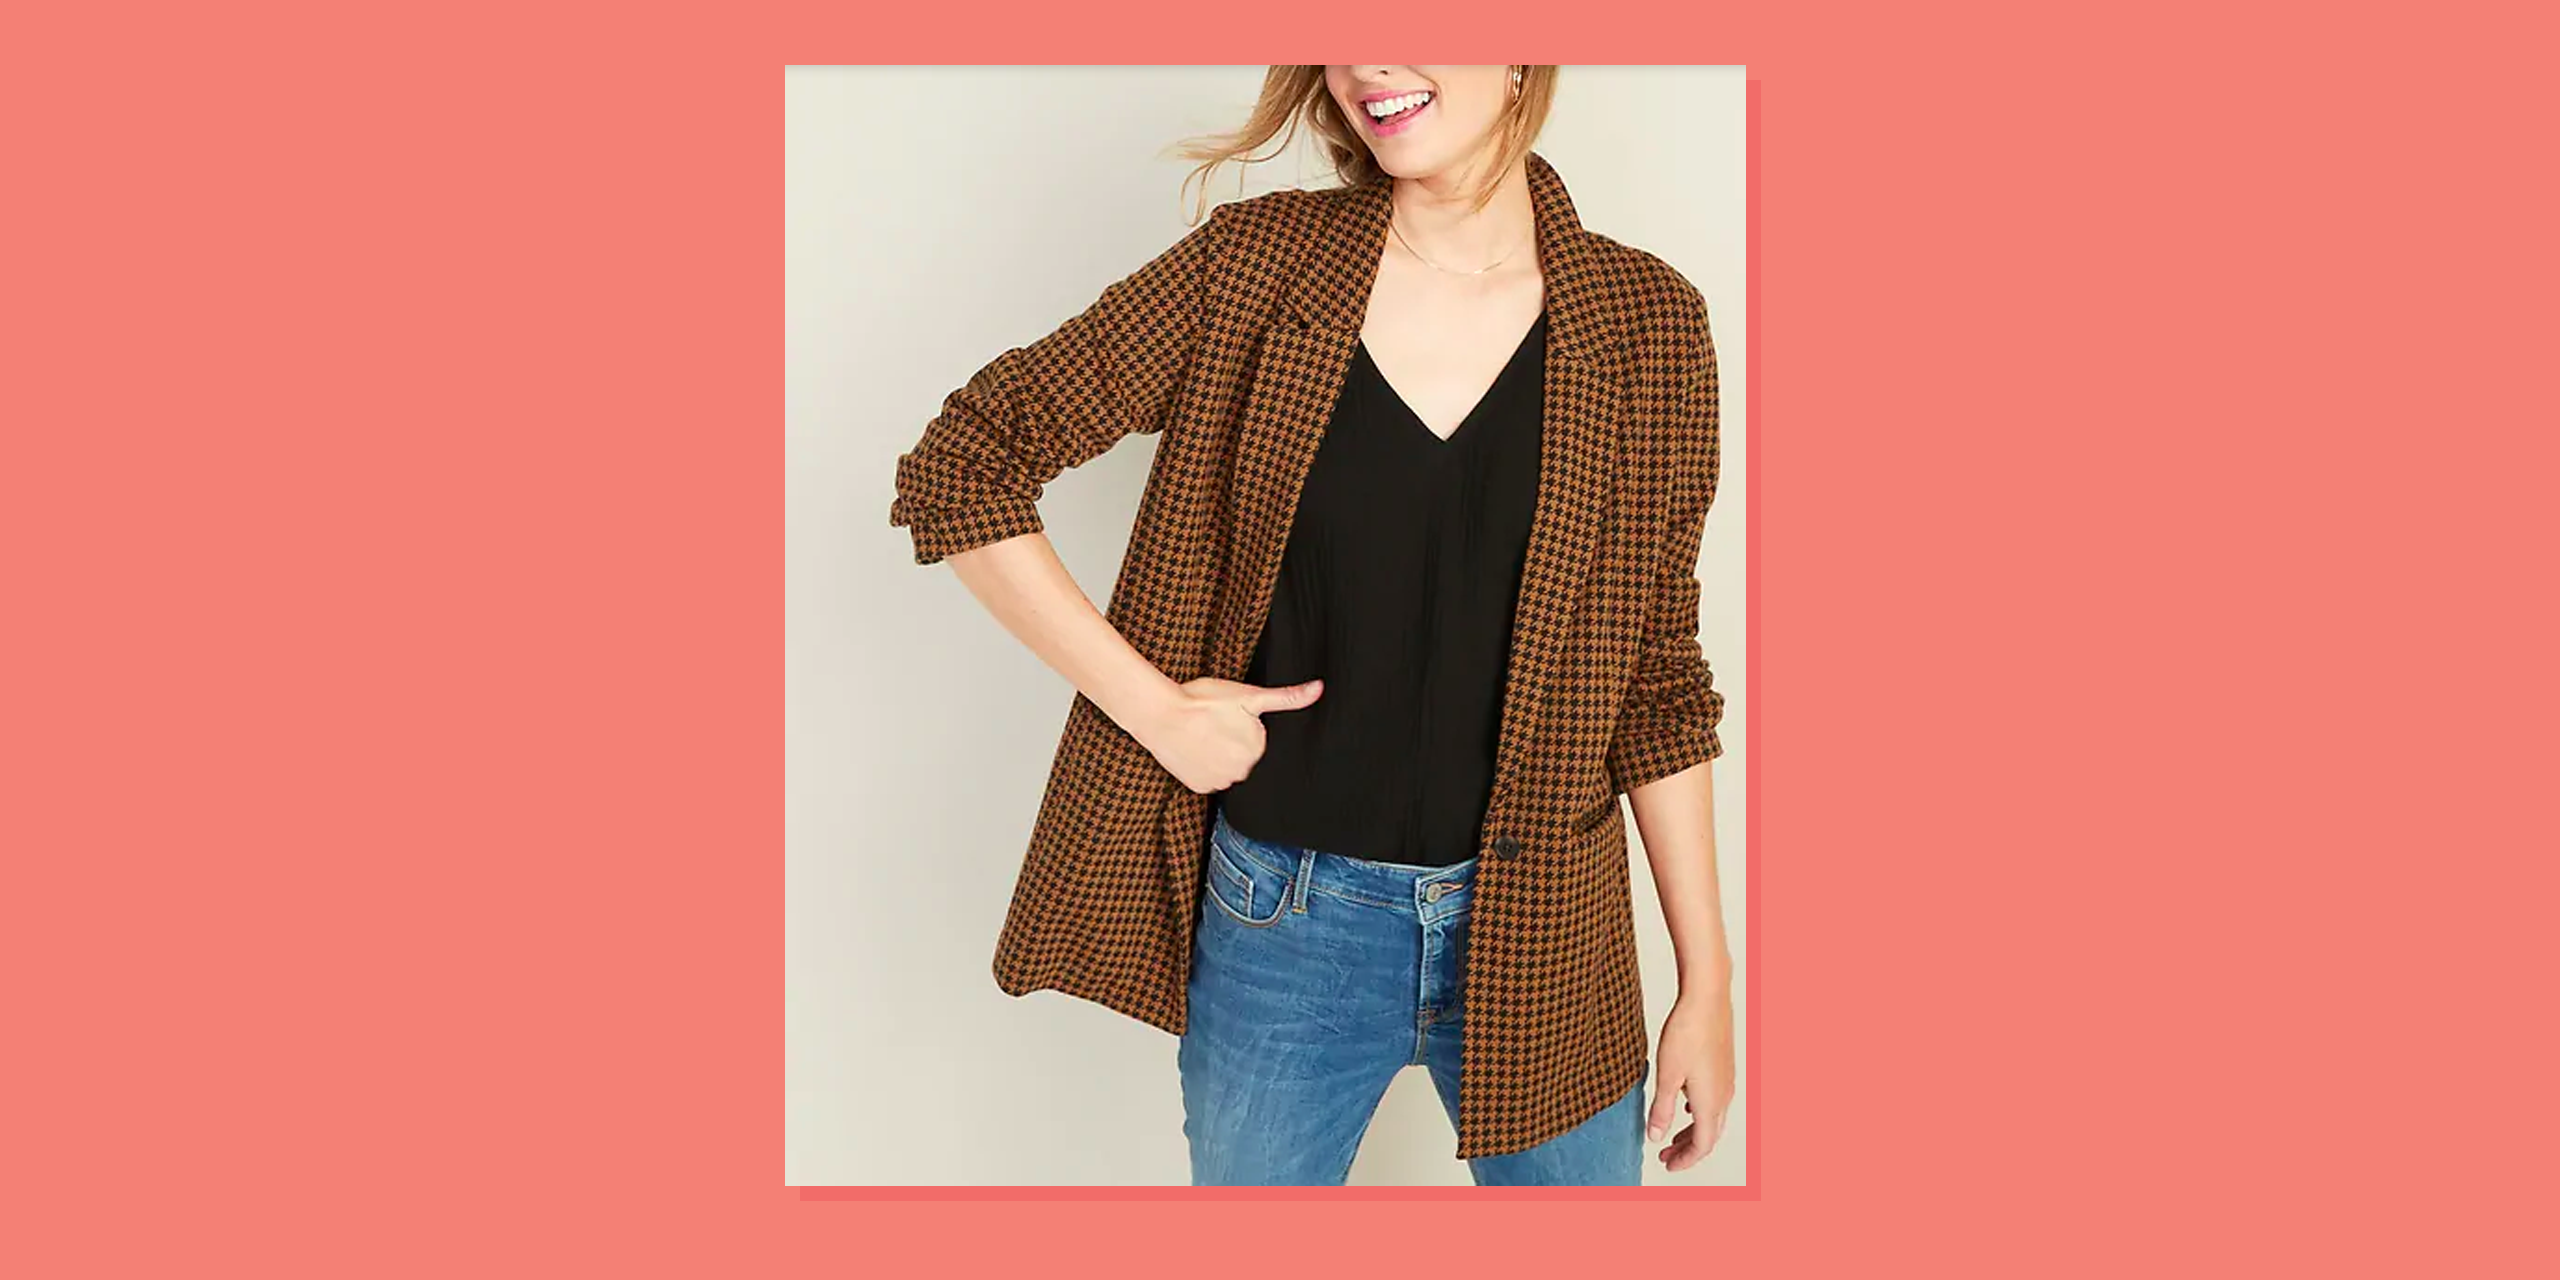 I Plan on Wearing Old Navy's Houndstooth Blazer Every Day This Fall